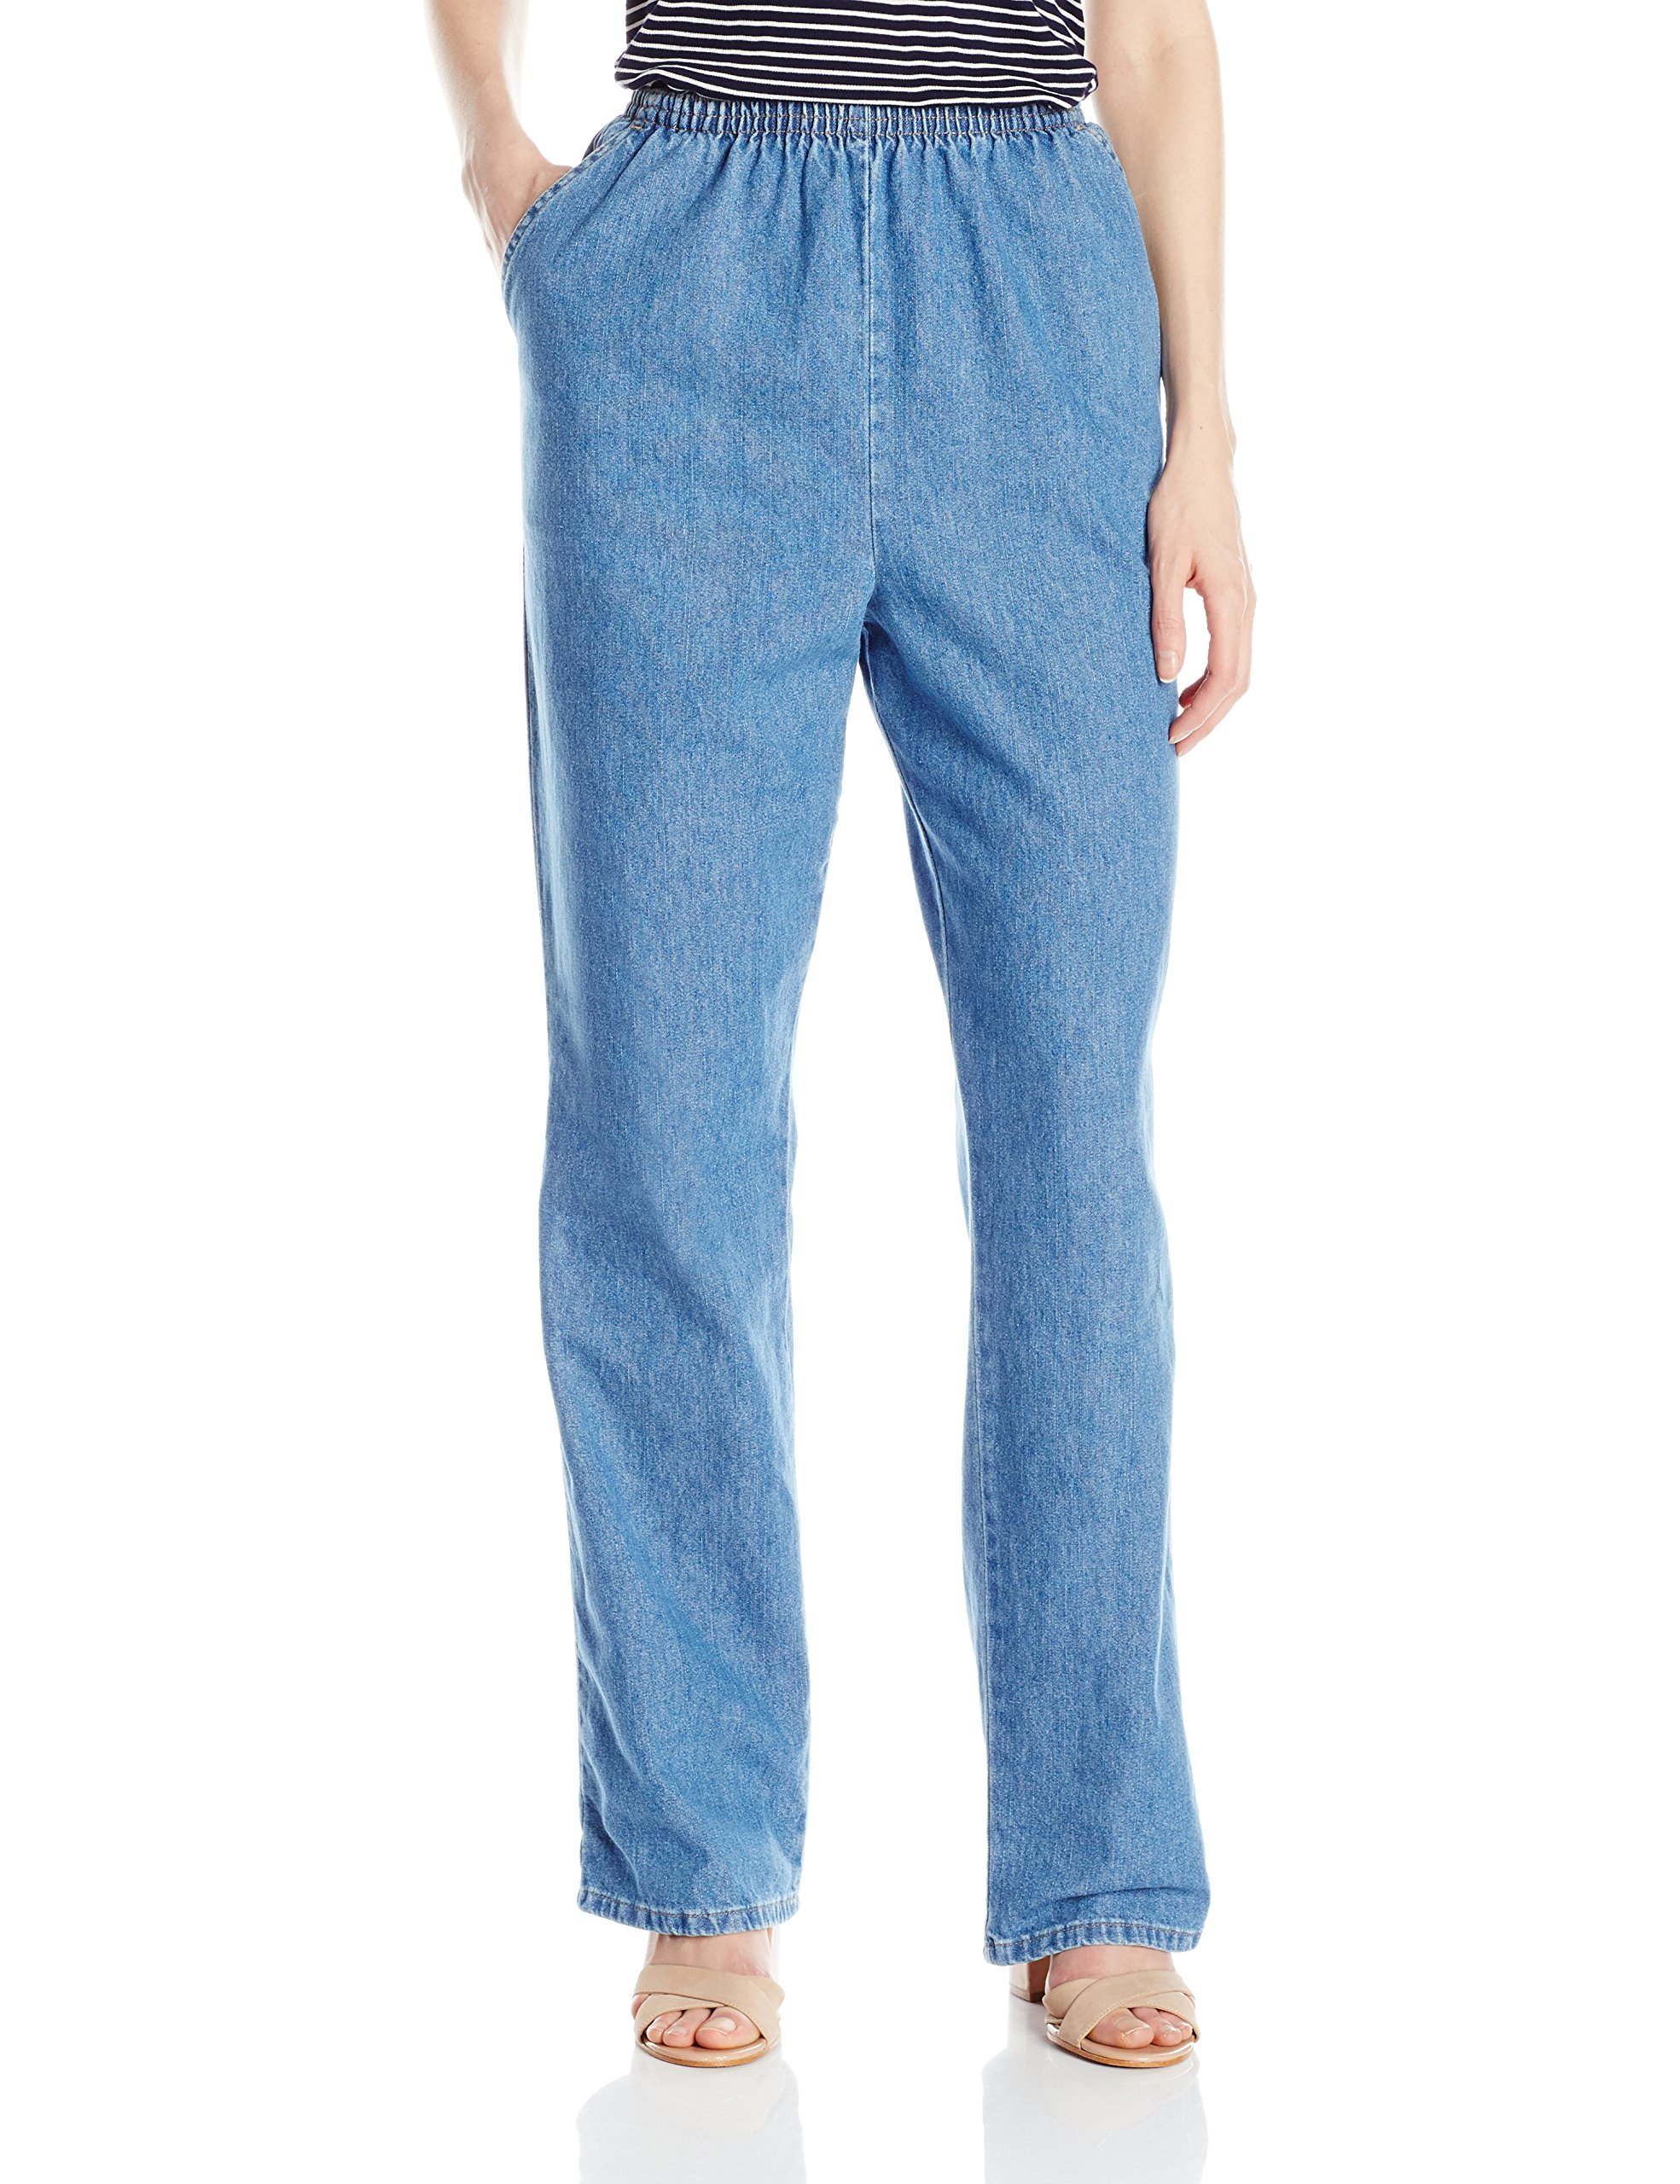 Chic Classic Collection Women's Cotton Pull-On Pant with Elastic Waist, Destruction Blue Denim, 16A